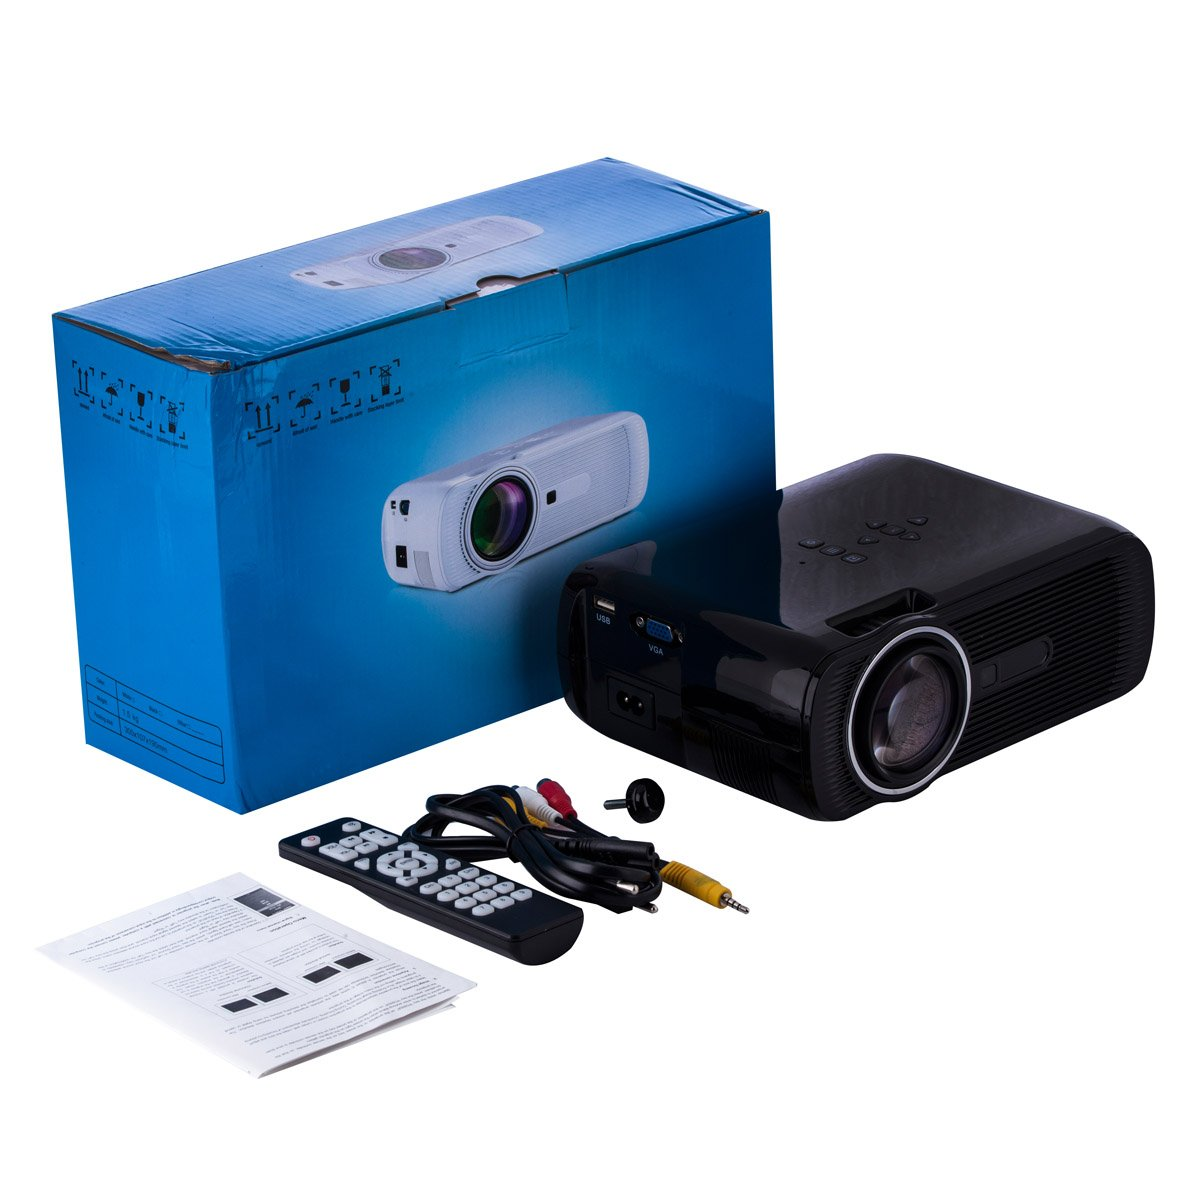 UHAPPY U80 Mini LED HD projector Portable projector (EN) - Black by U Happy (Image #5)